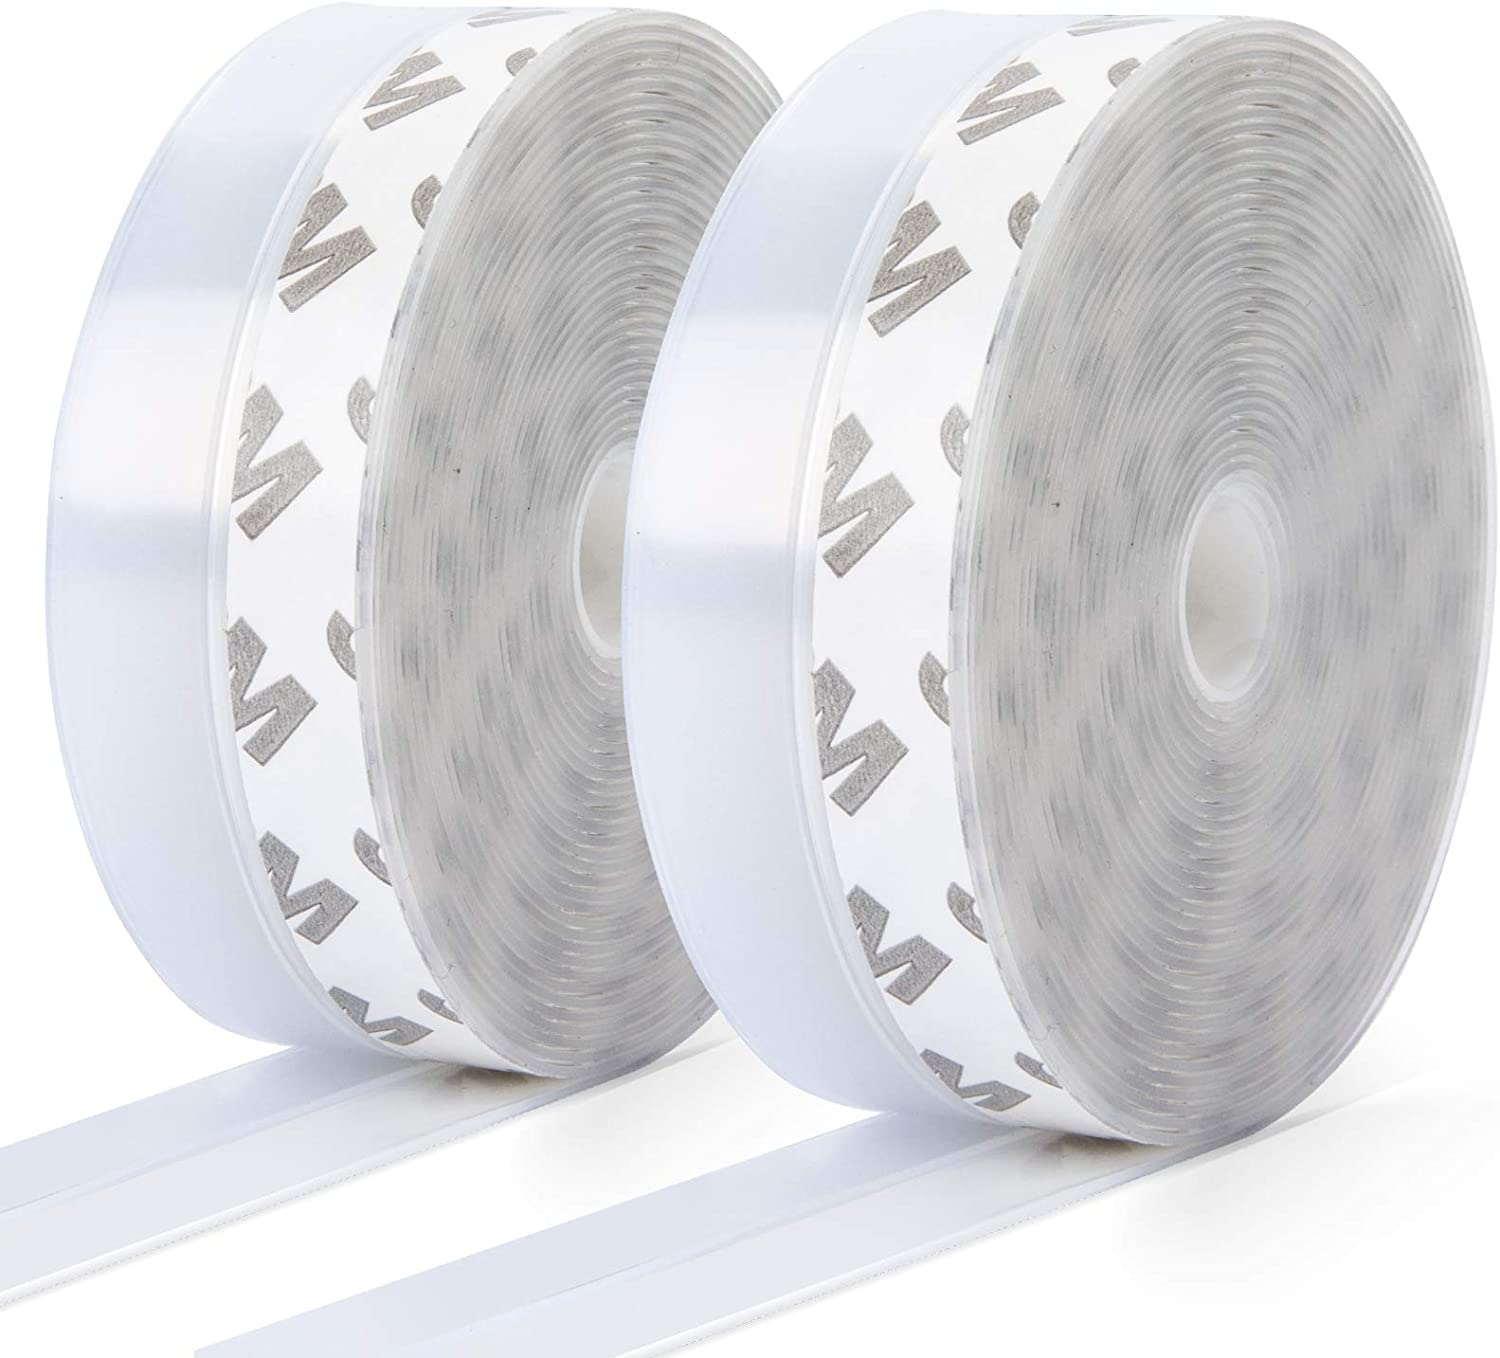 2 Pack Free shipping Product 10M 33 Ft Cfsnrts Seal Strip Silicone Str Door Weather